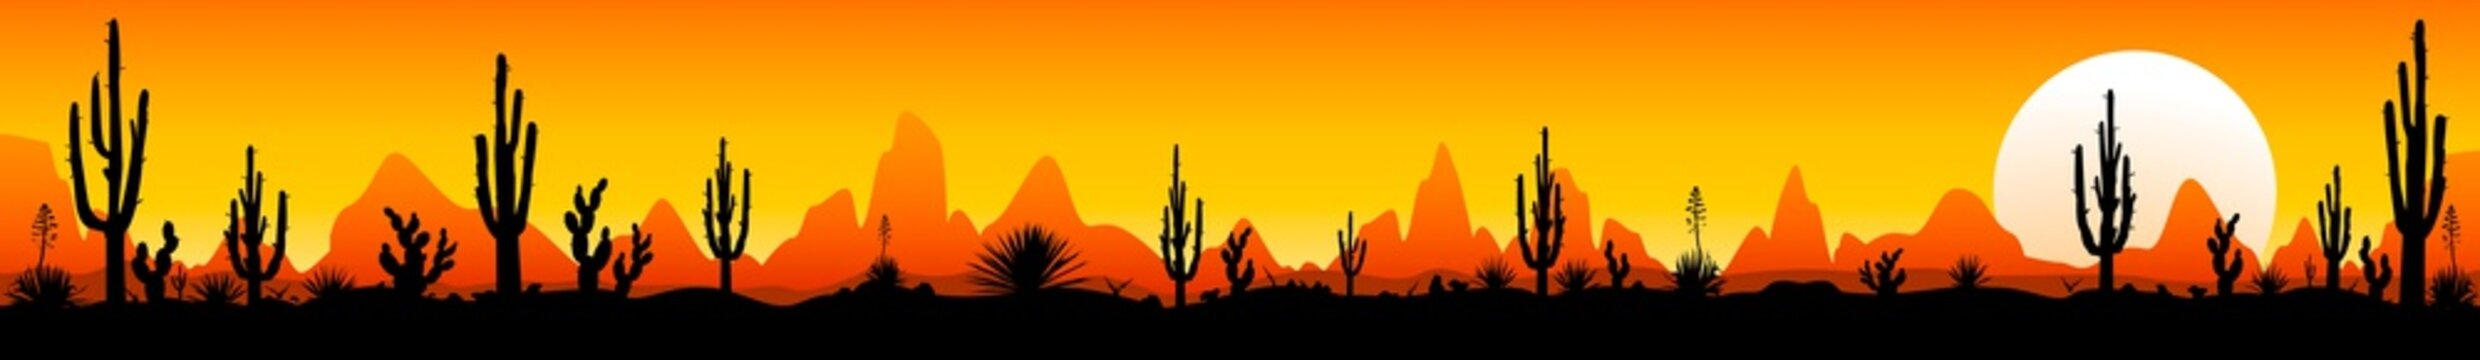 Panorama of the Mexican desert with cacti. Sunset in the Mexican desert. Silhouettes of stones, cacti and plants. Desert landscape with cacti. The stony desert